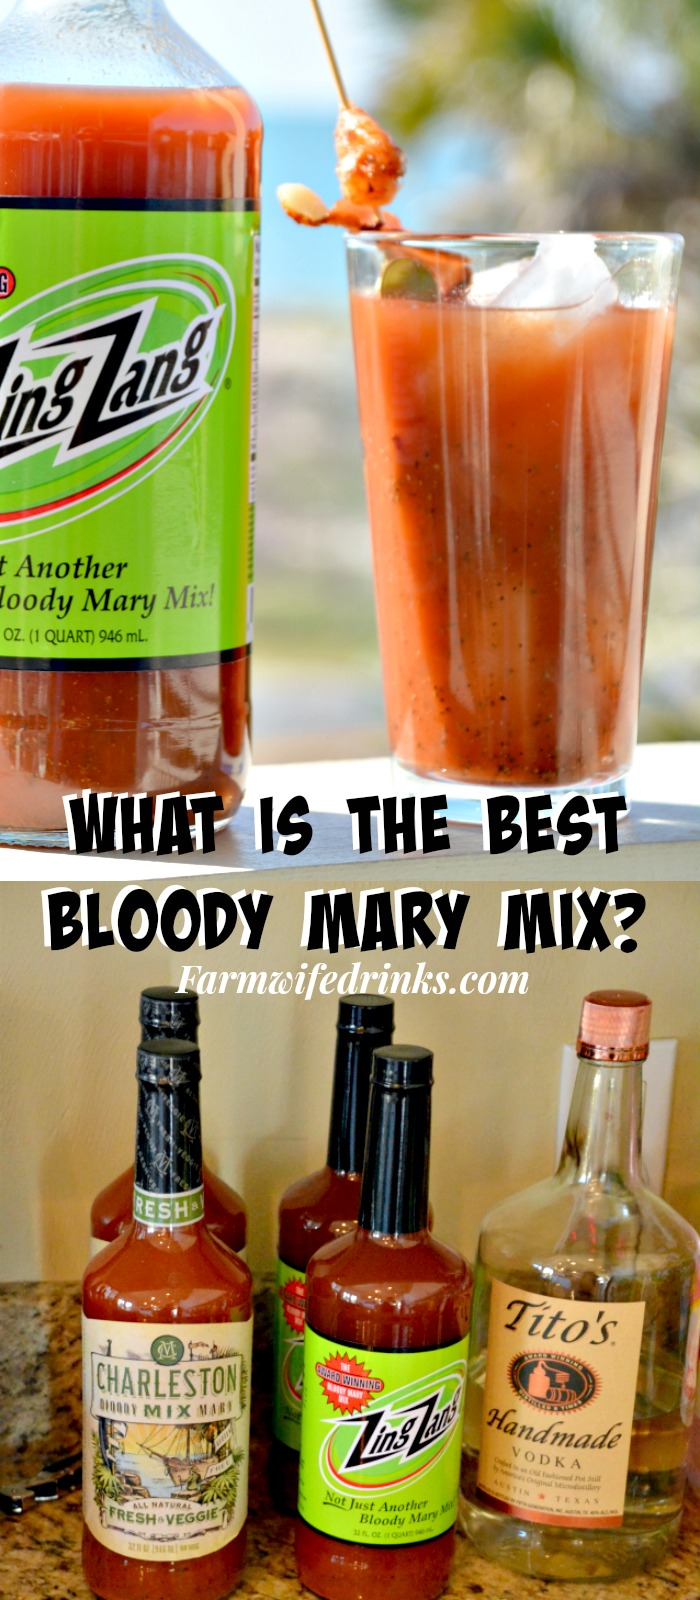 the best Bloody Mary? No fear, just use a mix. Find out what the best ...